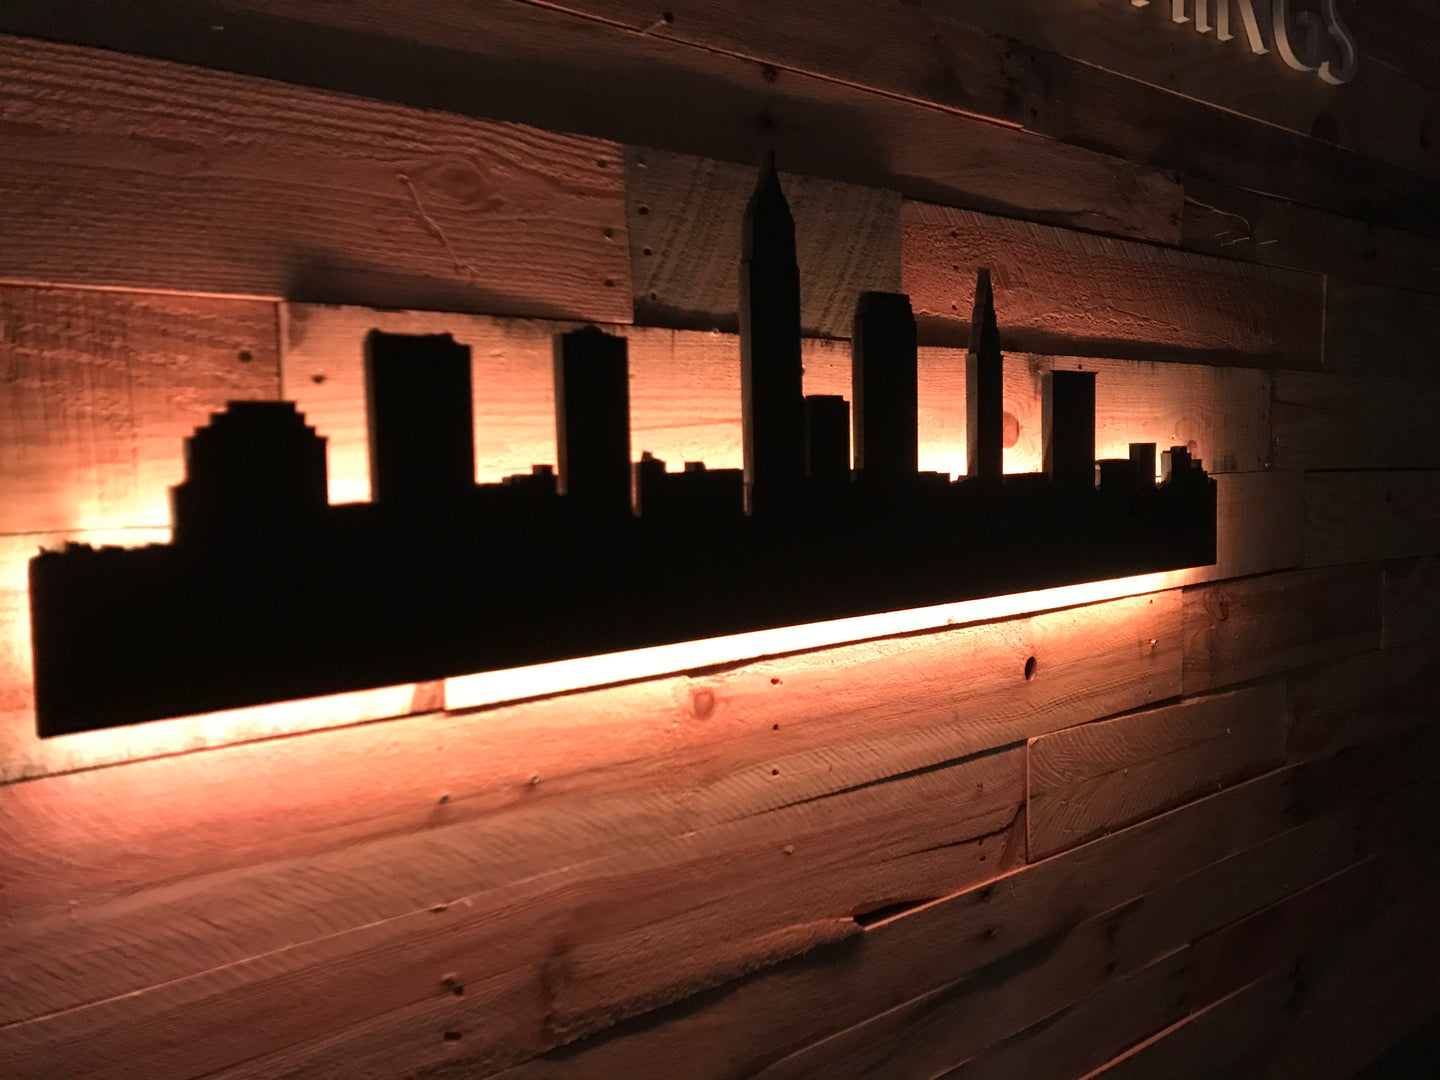 HAND CRAFTED LED SIGNS